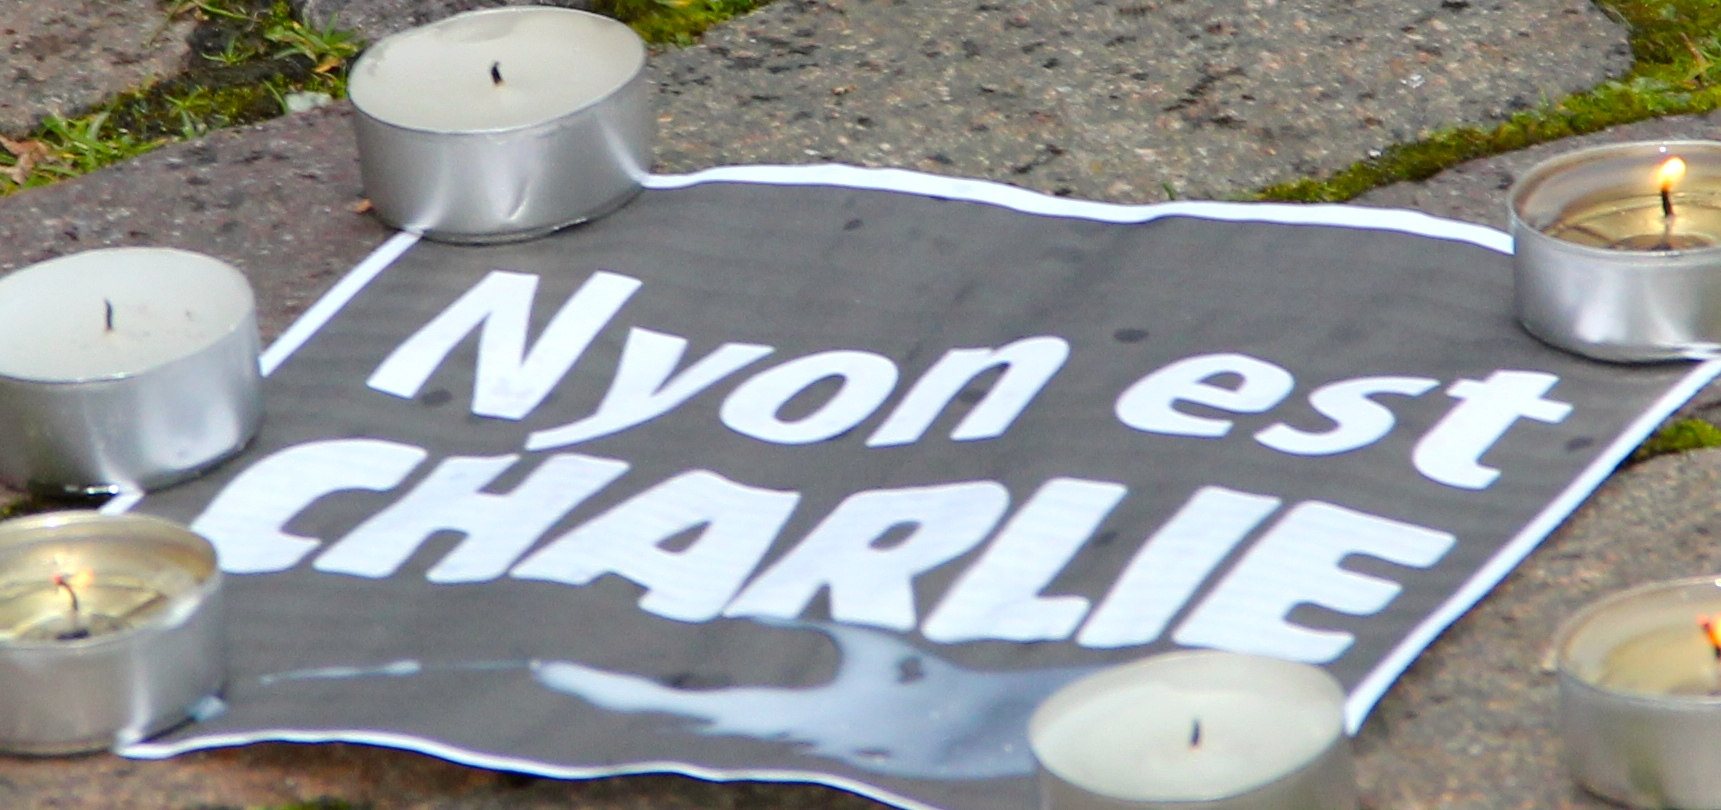 Photos from two recent Nyon events – Three Kings Day and Je Suis Charlie vigil